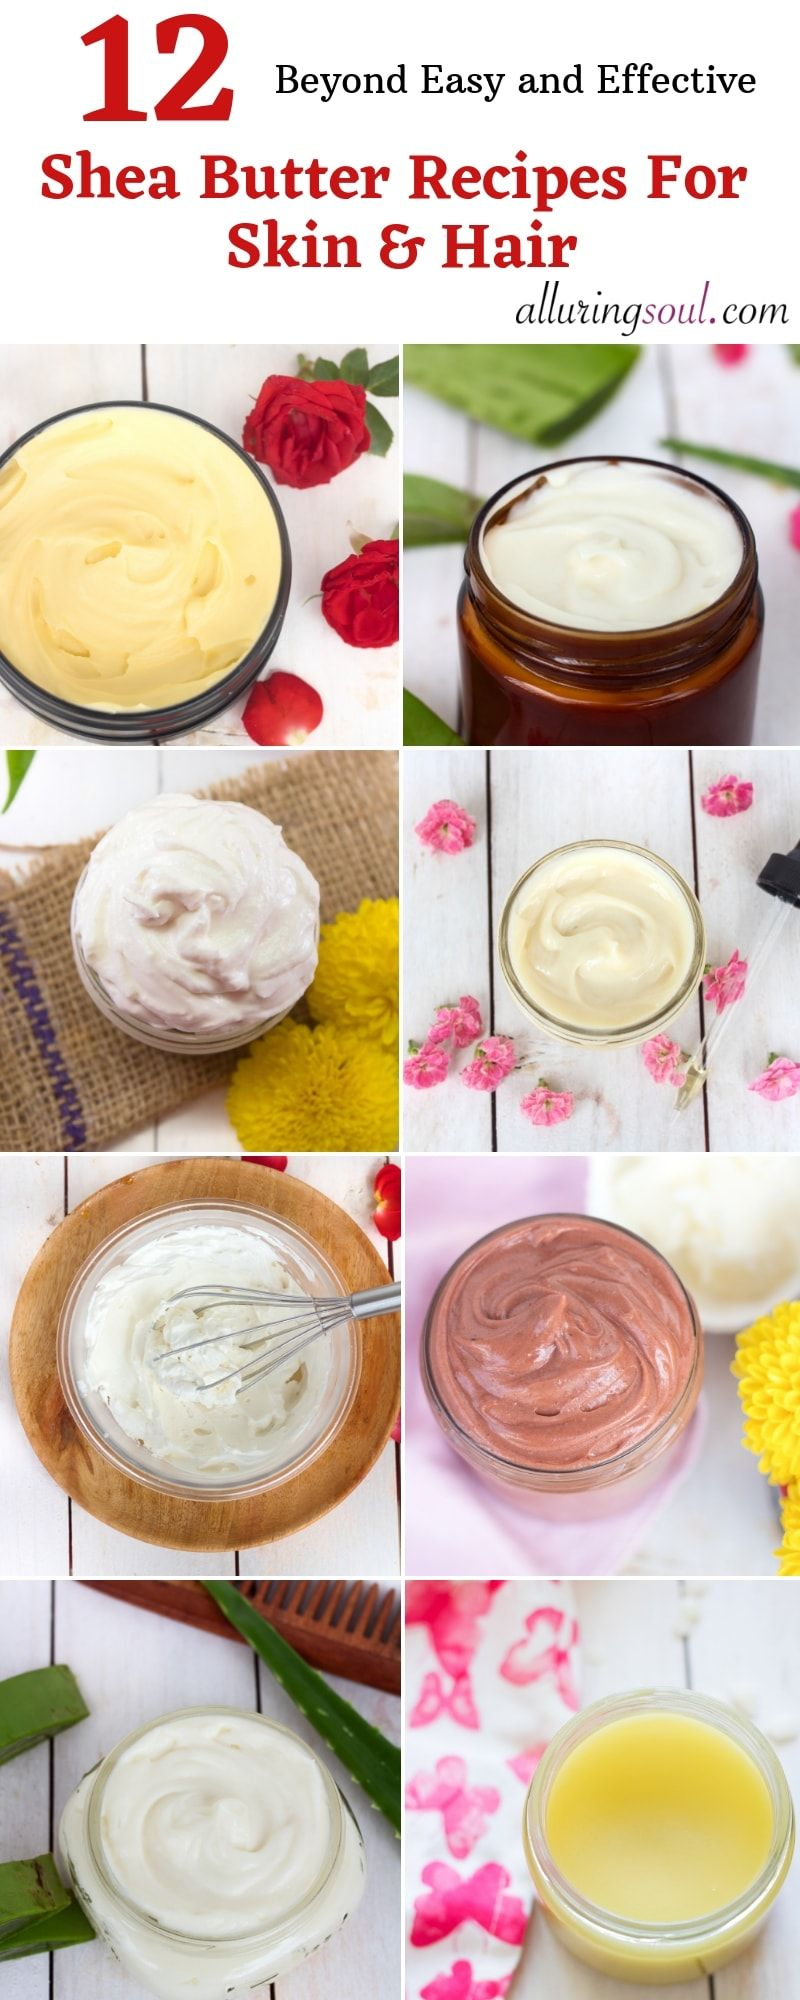 12 Shea Butter Recipes For Skin & Hair (Beyond Easy #healthyskin